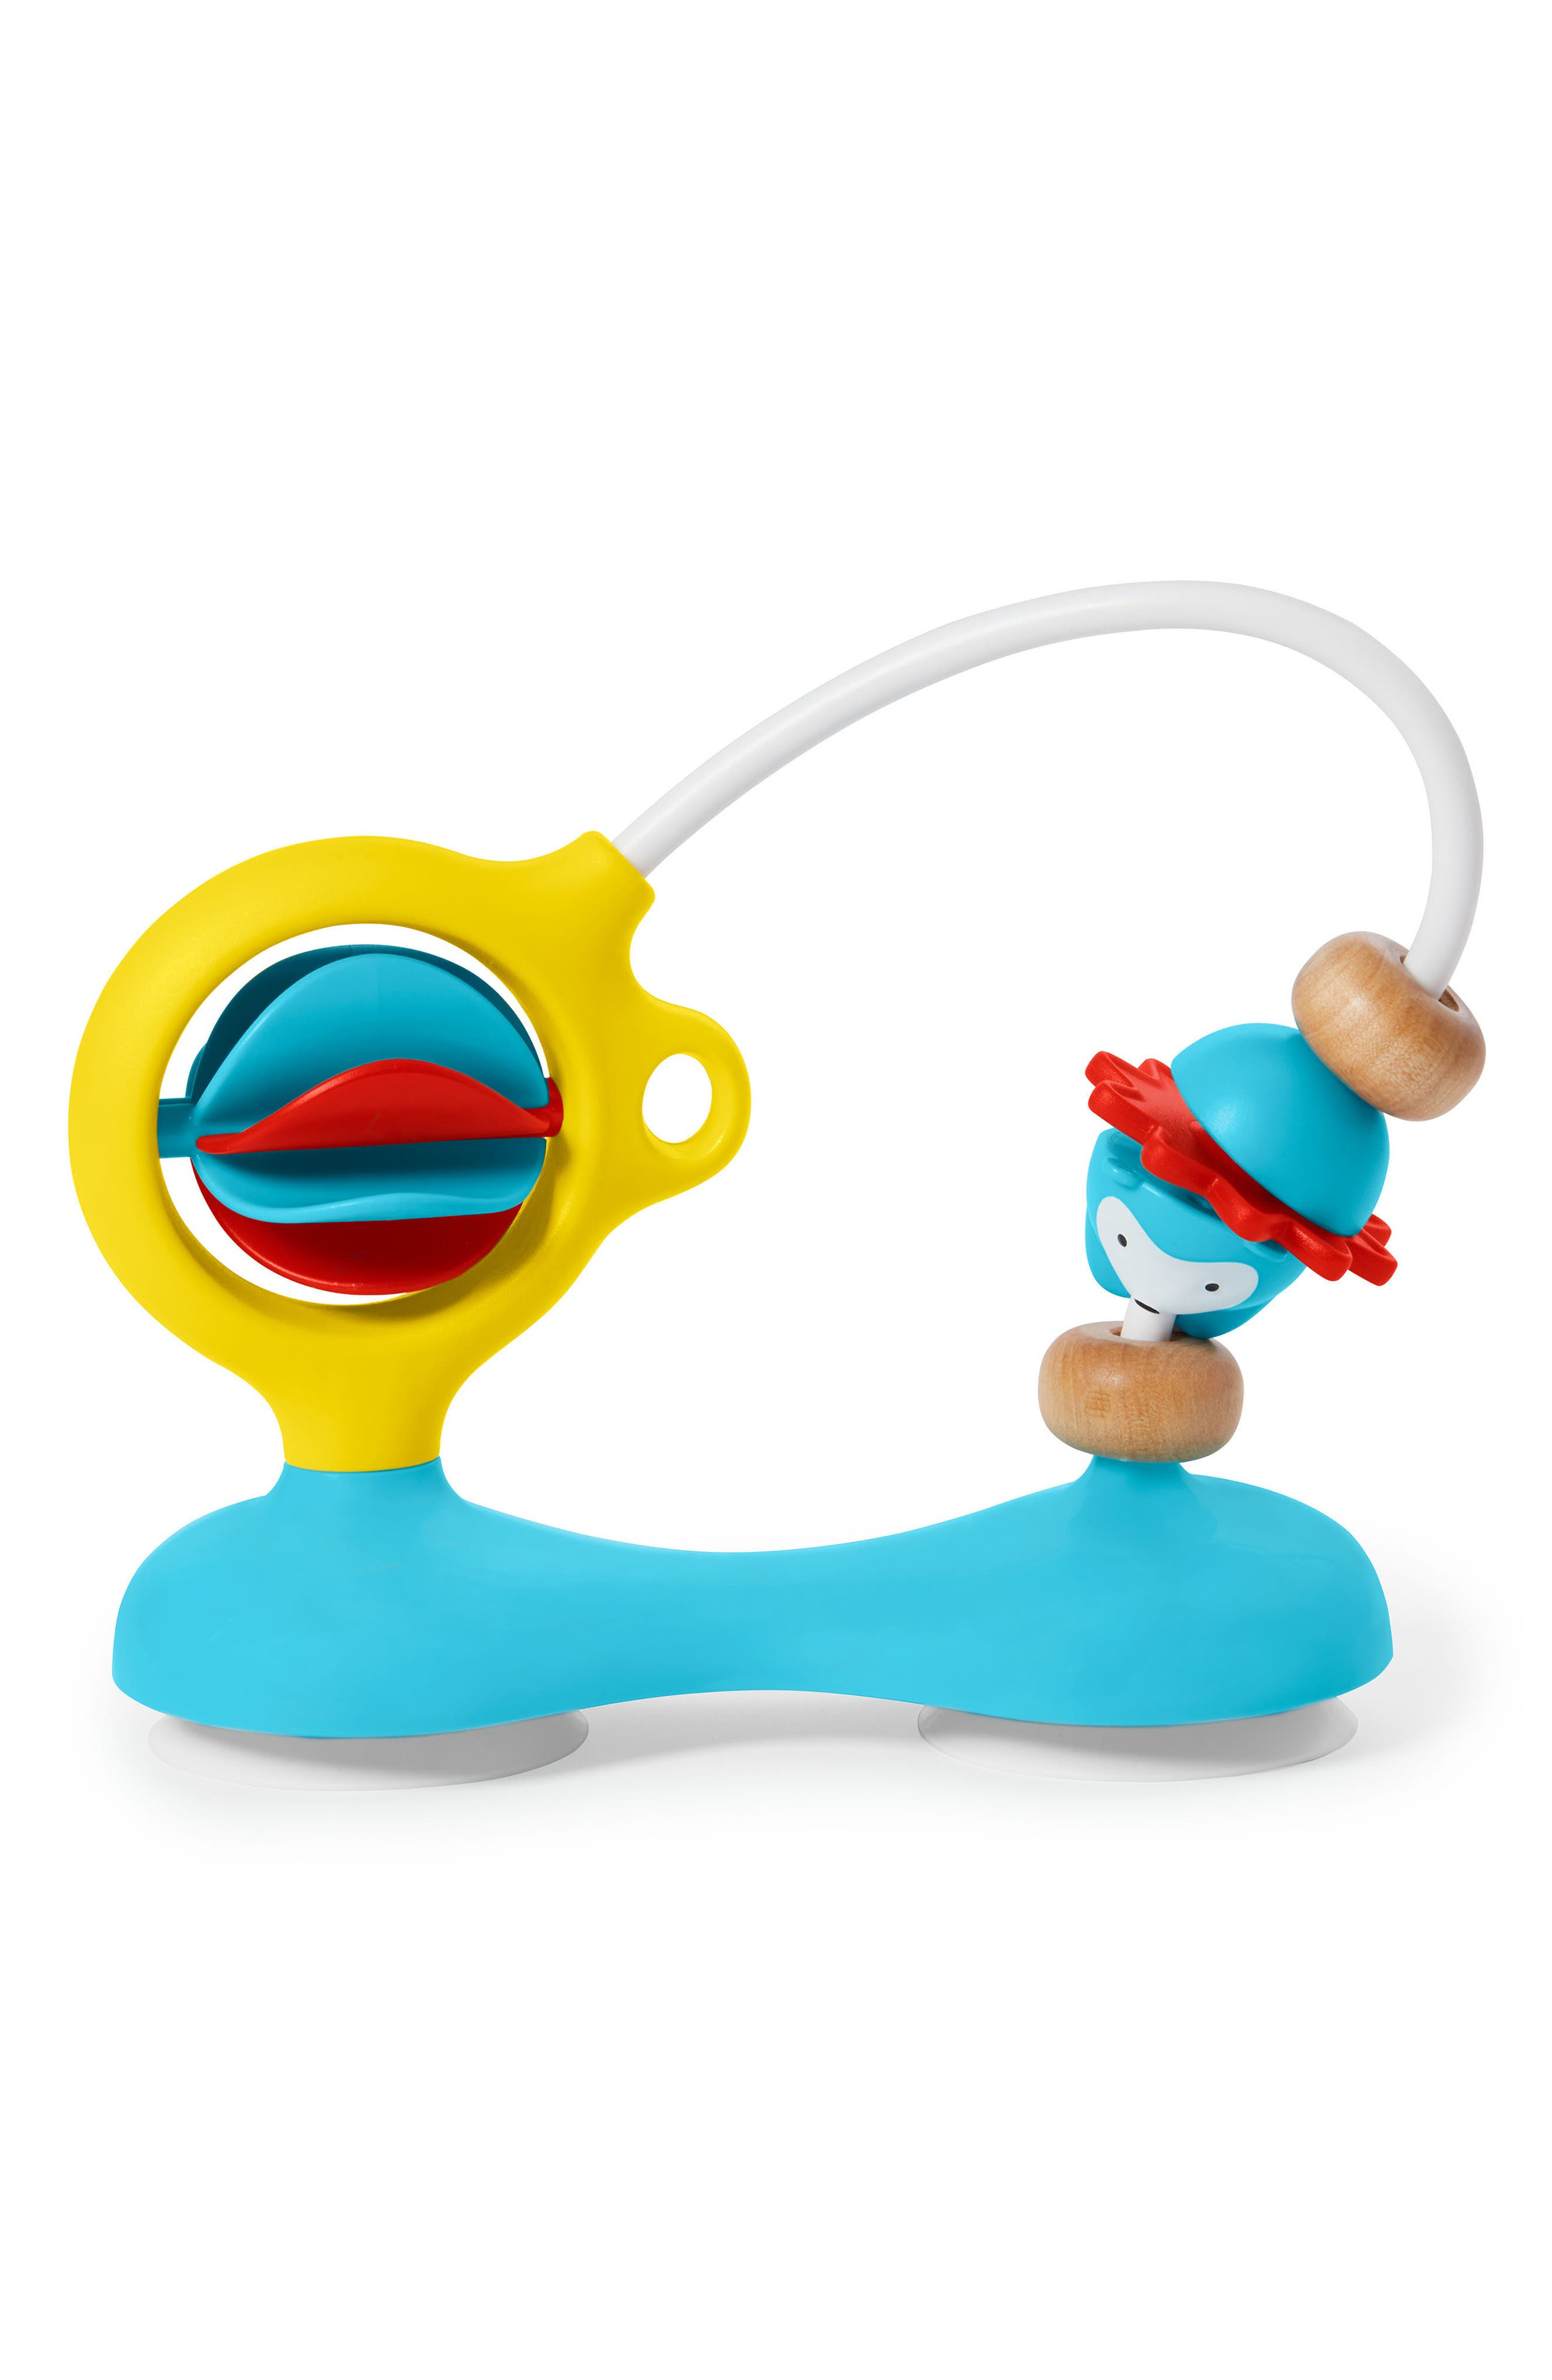 Explore N More Bead Mover Highchair Toy,                             Main thumbnail 1, color,                             400